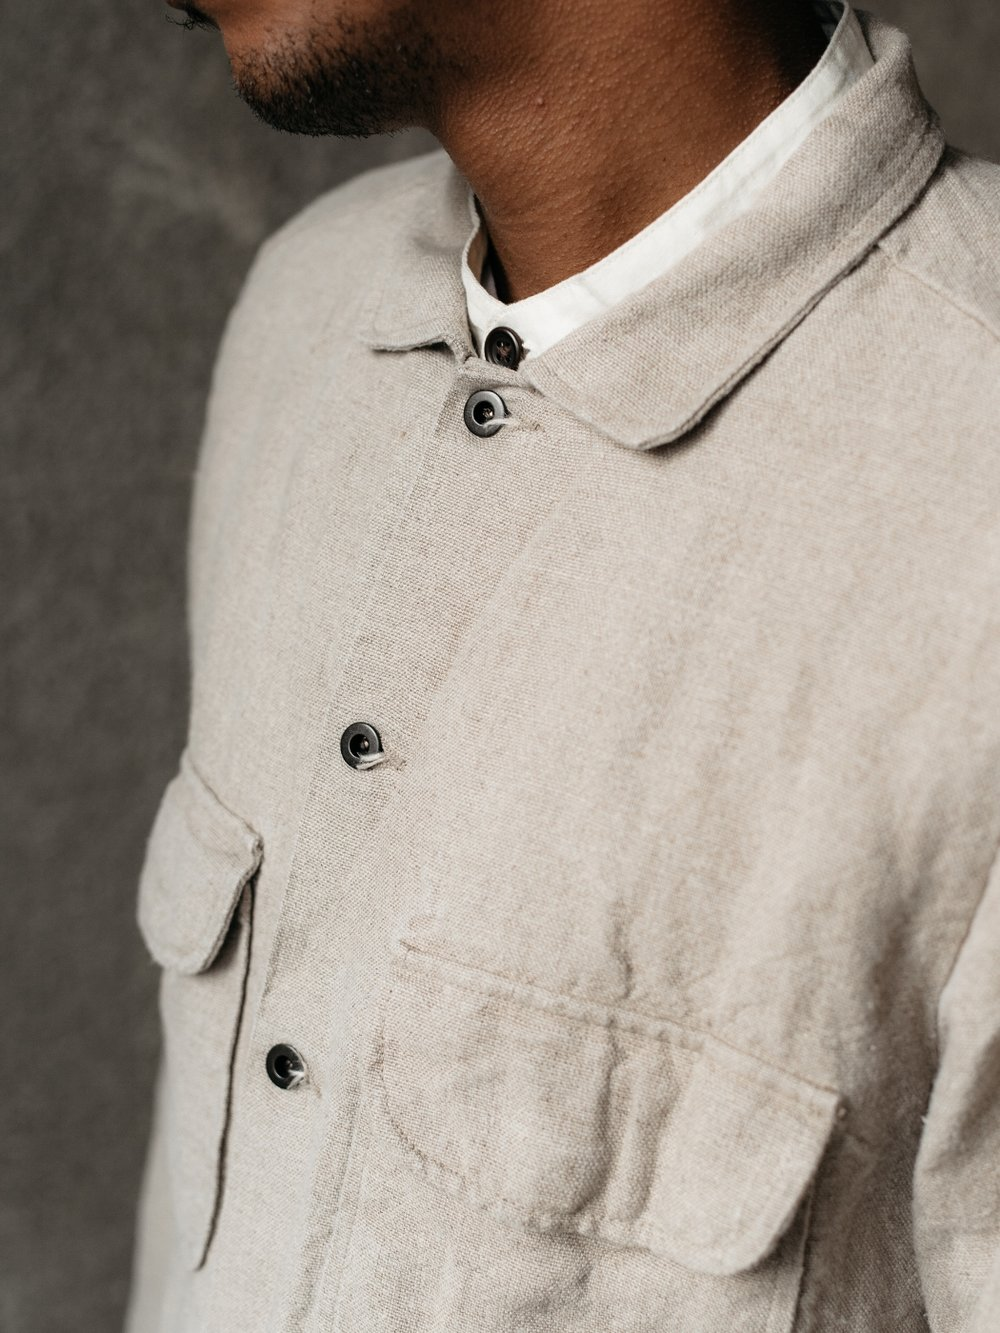 evan-kinori-band-collar-shirt-field-shirt-hemp-organic-cotton